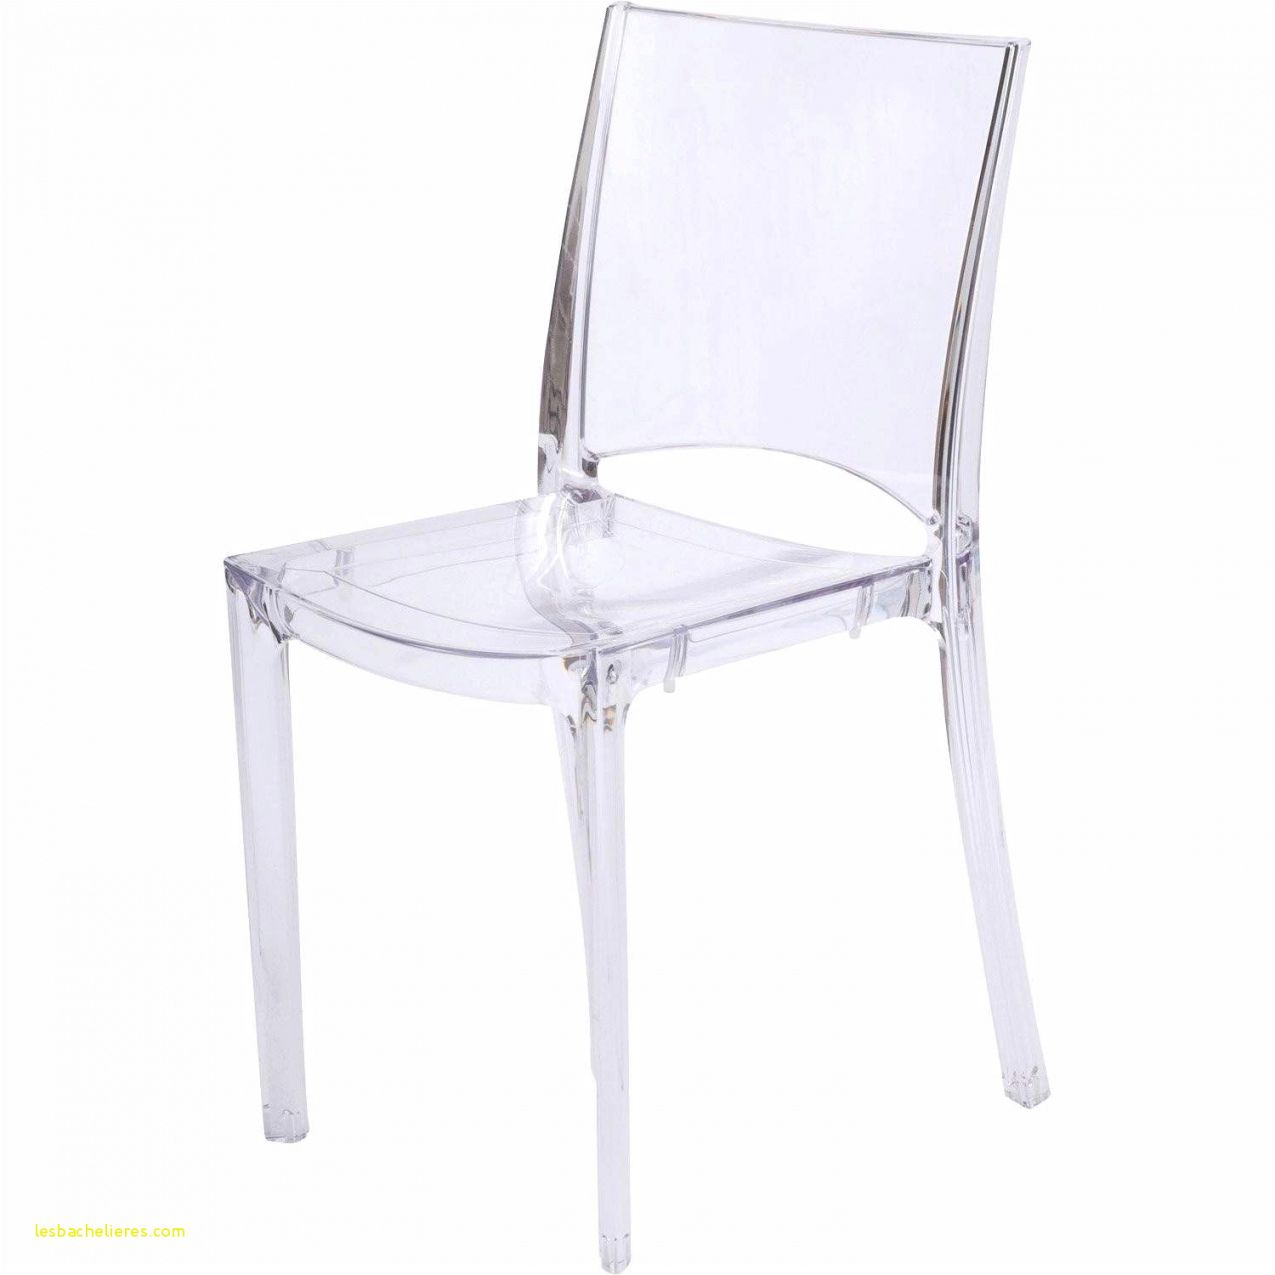 Stein Chaise Transparent Ikea Chaise Transparente Chaise Empilable Ikea